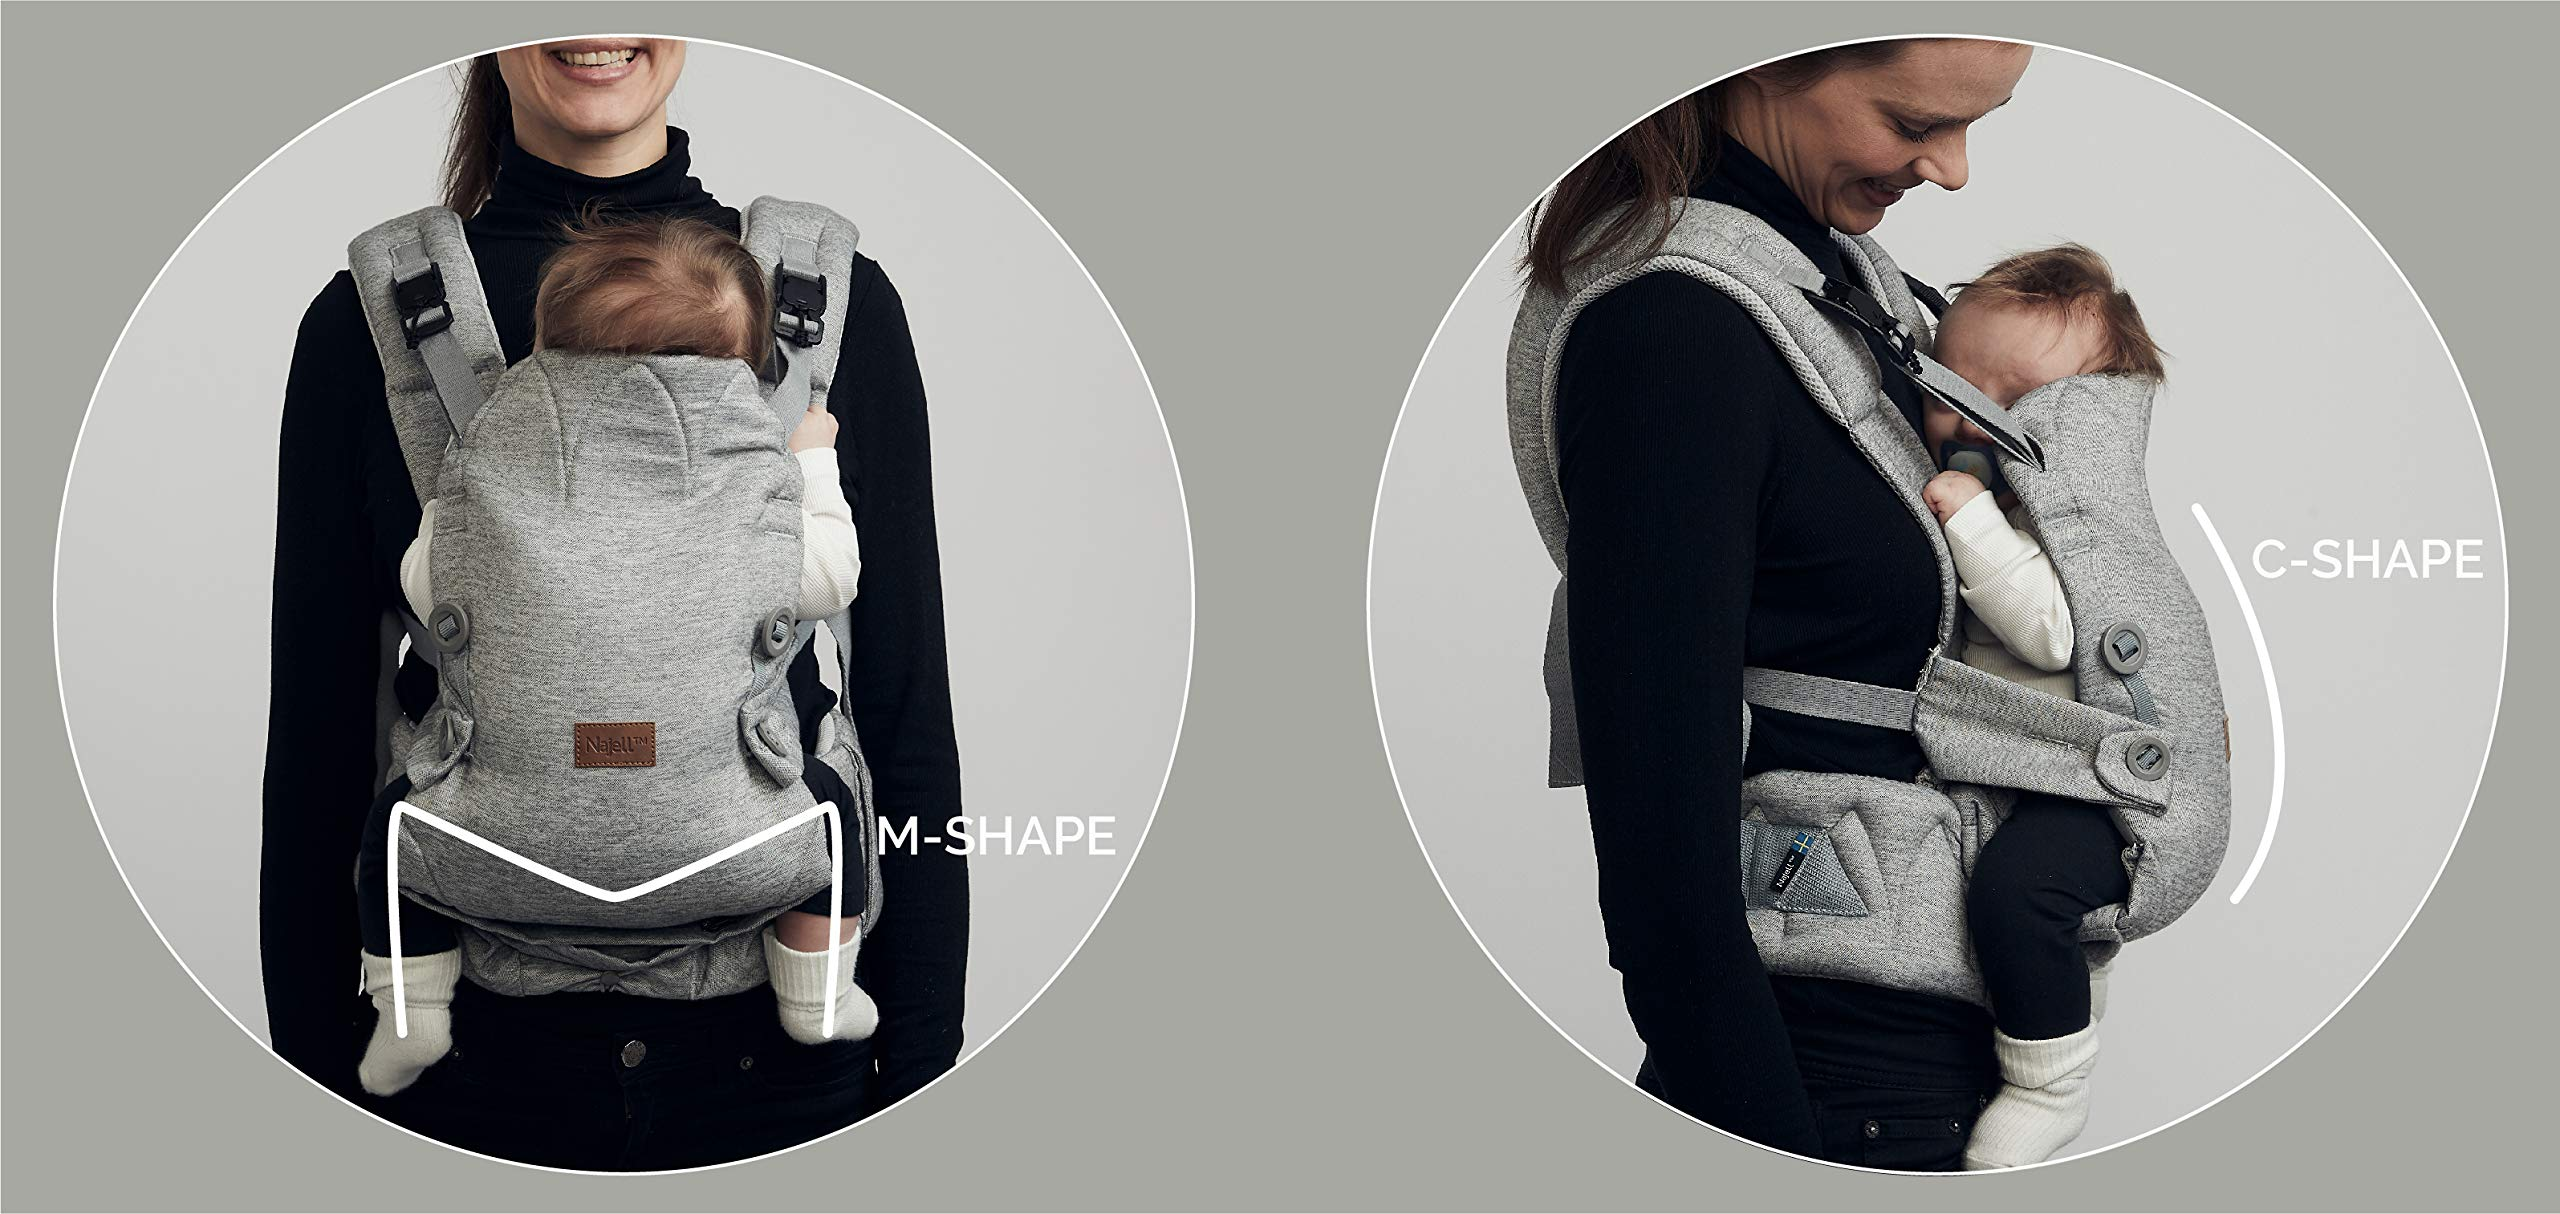 Najell Omni Active Mesh Baby Carrier with Hip Seat, Brilliant Black Béaba New-born ergonomic position and hips seat from 6 months. Market leading weight distribution with hip seat, recommended by the international hip dysplasia institute as a hip-healthy baby carrier Weight: 3, 5 to 15 kg and age: new-born to 3 years. 17